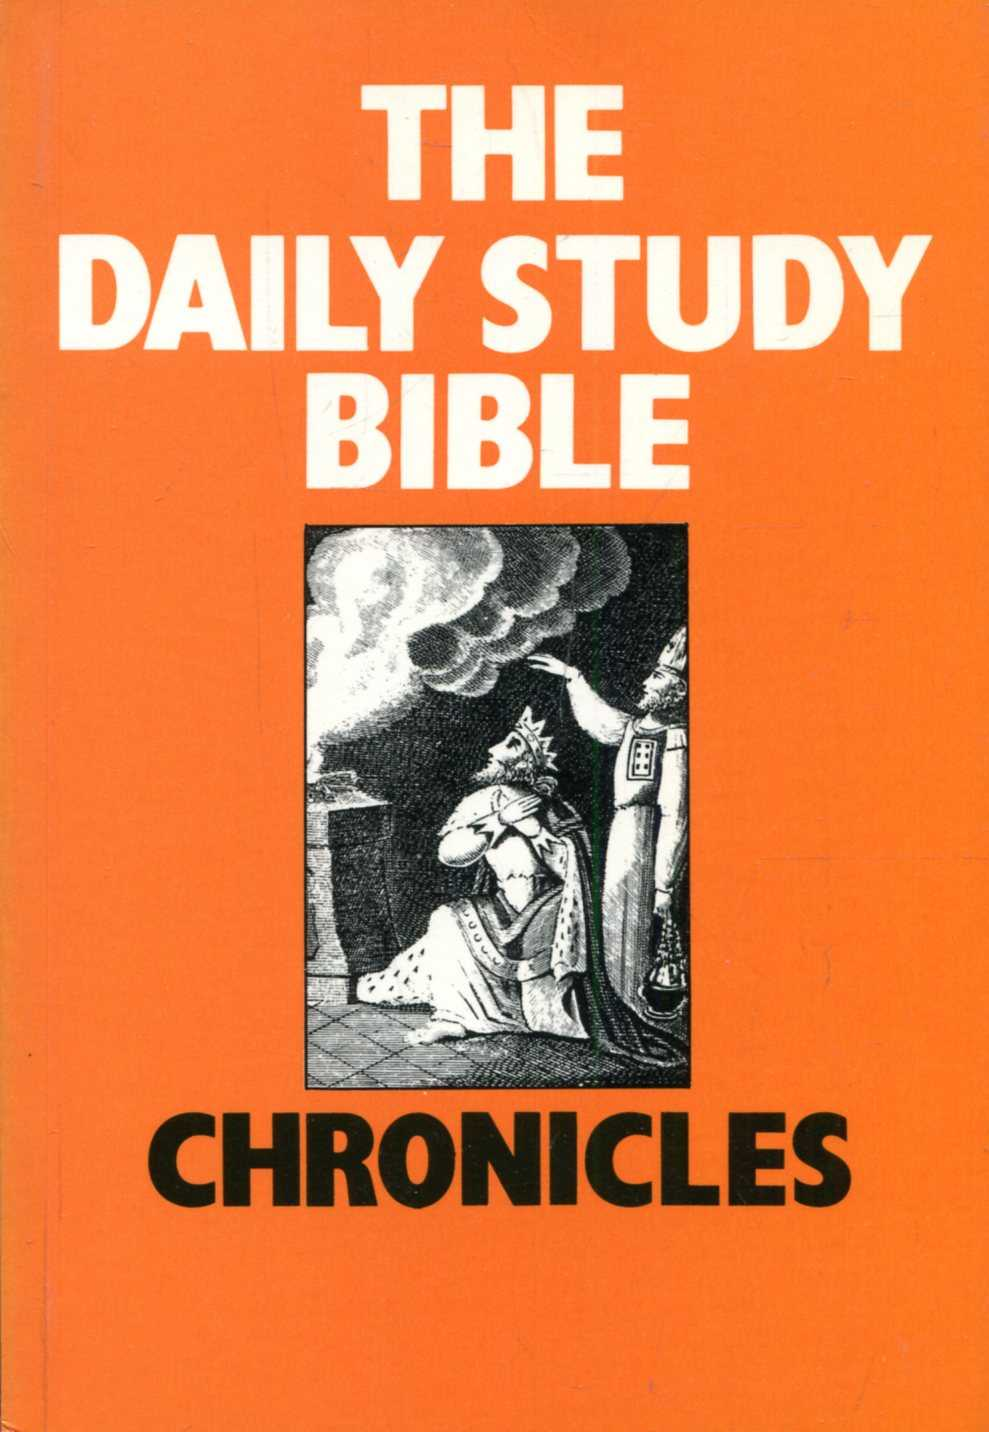 Image for The Daily Study Bible : Chronicles